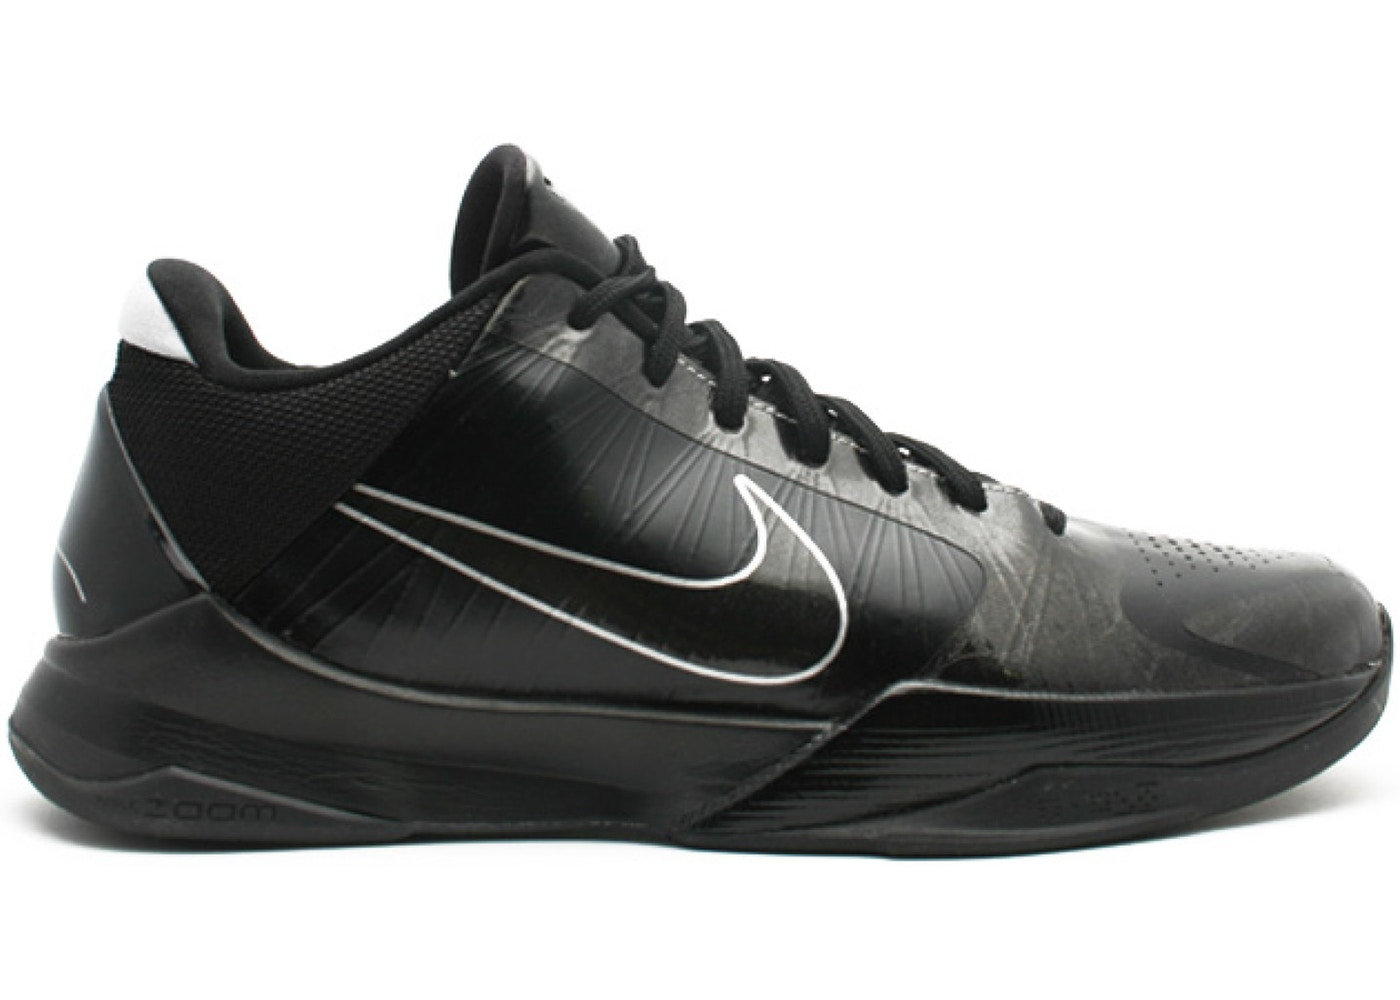 online store 8cb0e 6f6f4 Buy Nike Kobe 5 Shoes   Deadstock Sneakers